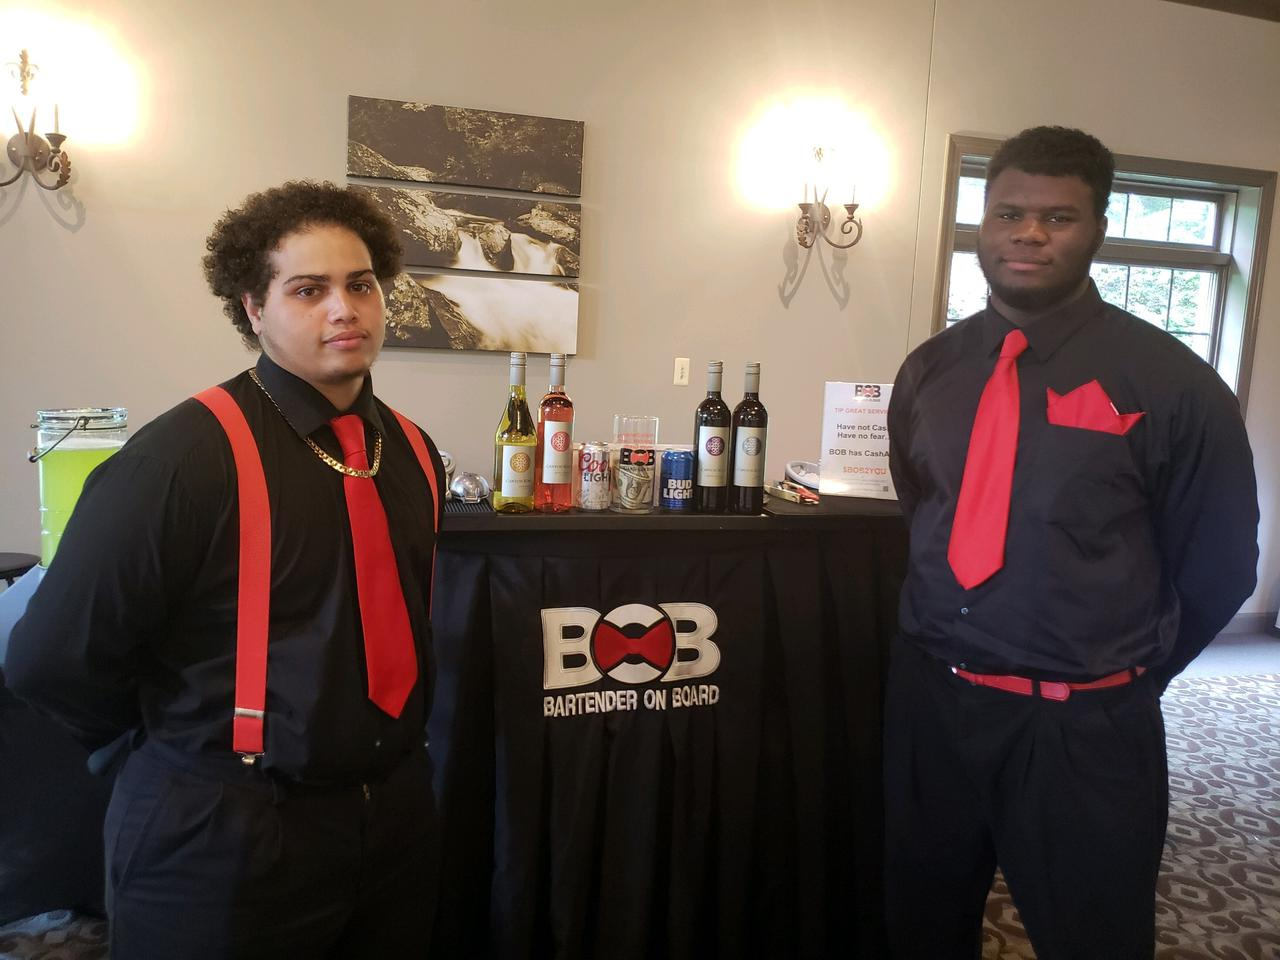 Party bartenders for hire in Atlanta.